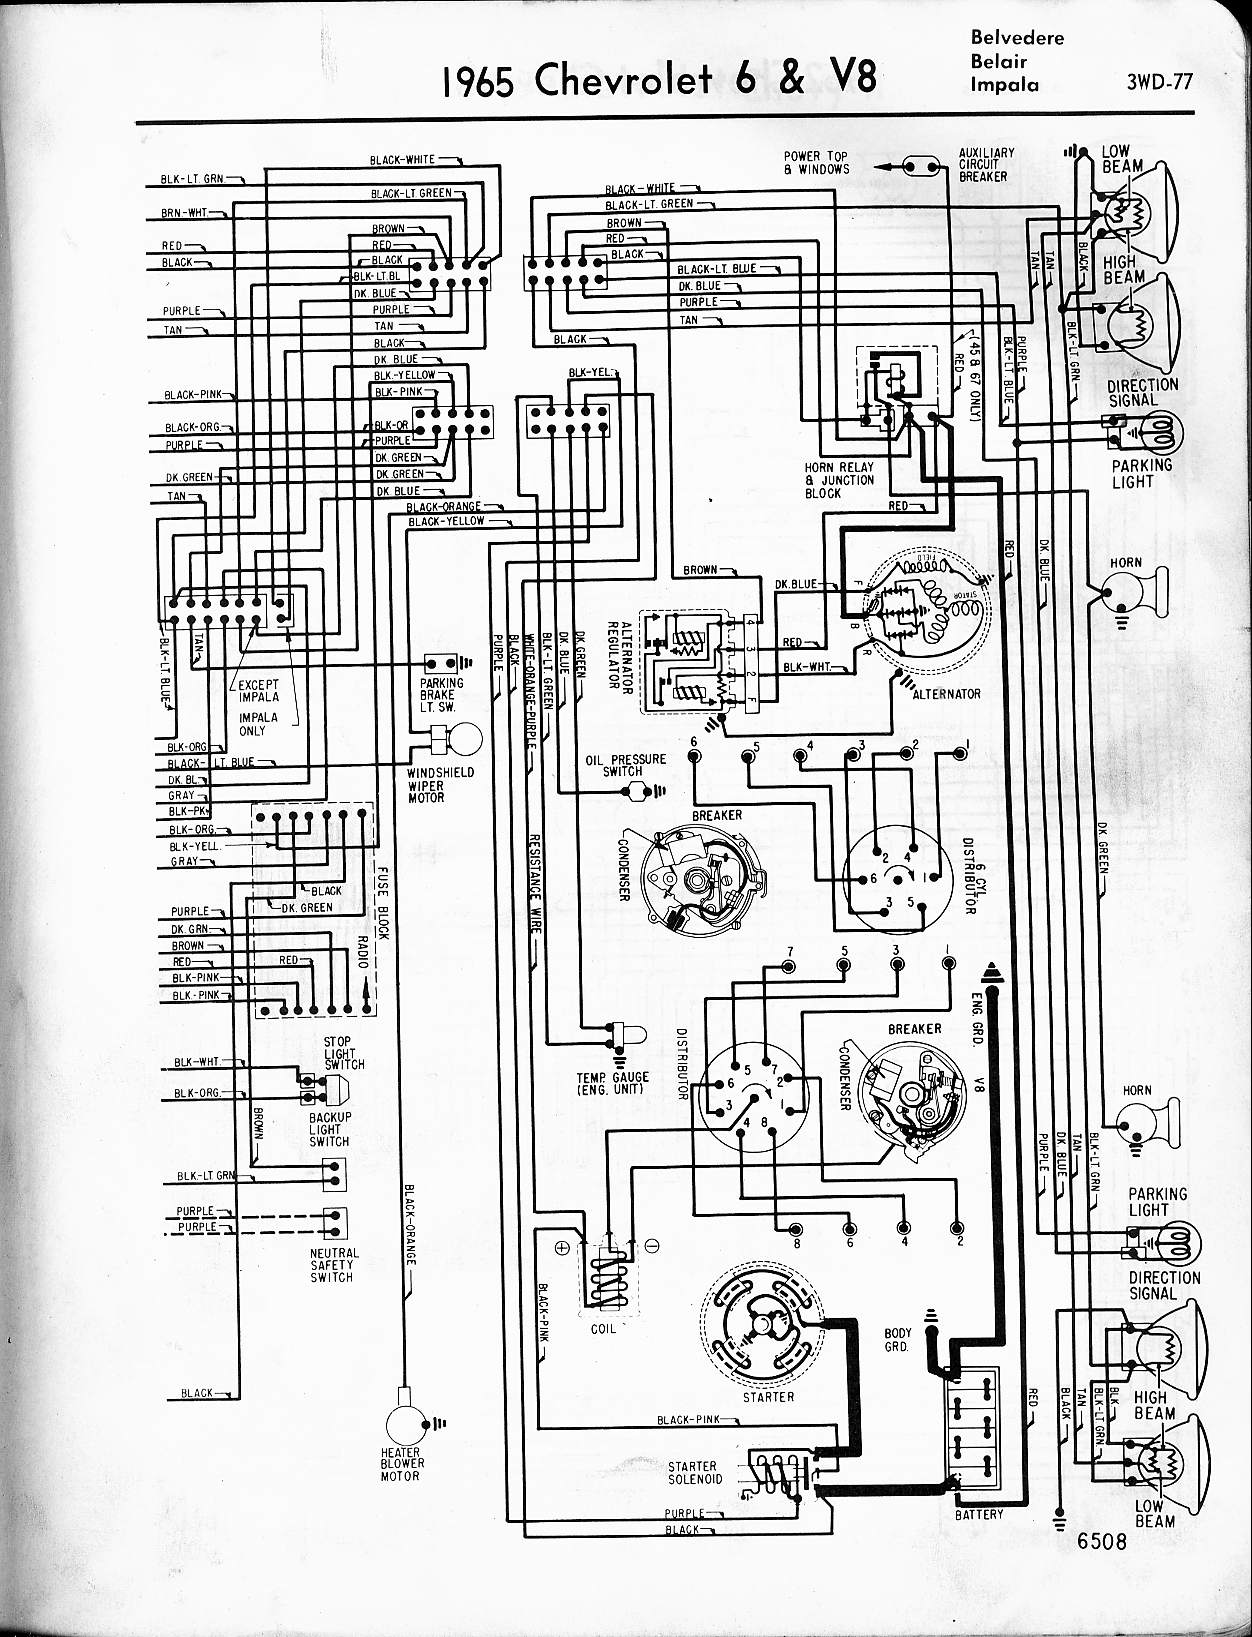 57 65 chevy wiring diagrams rh oldcarmanualproject com 1964 Chevelle Wiring Schematic 1968 Chevelle Wiring Schematic